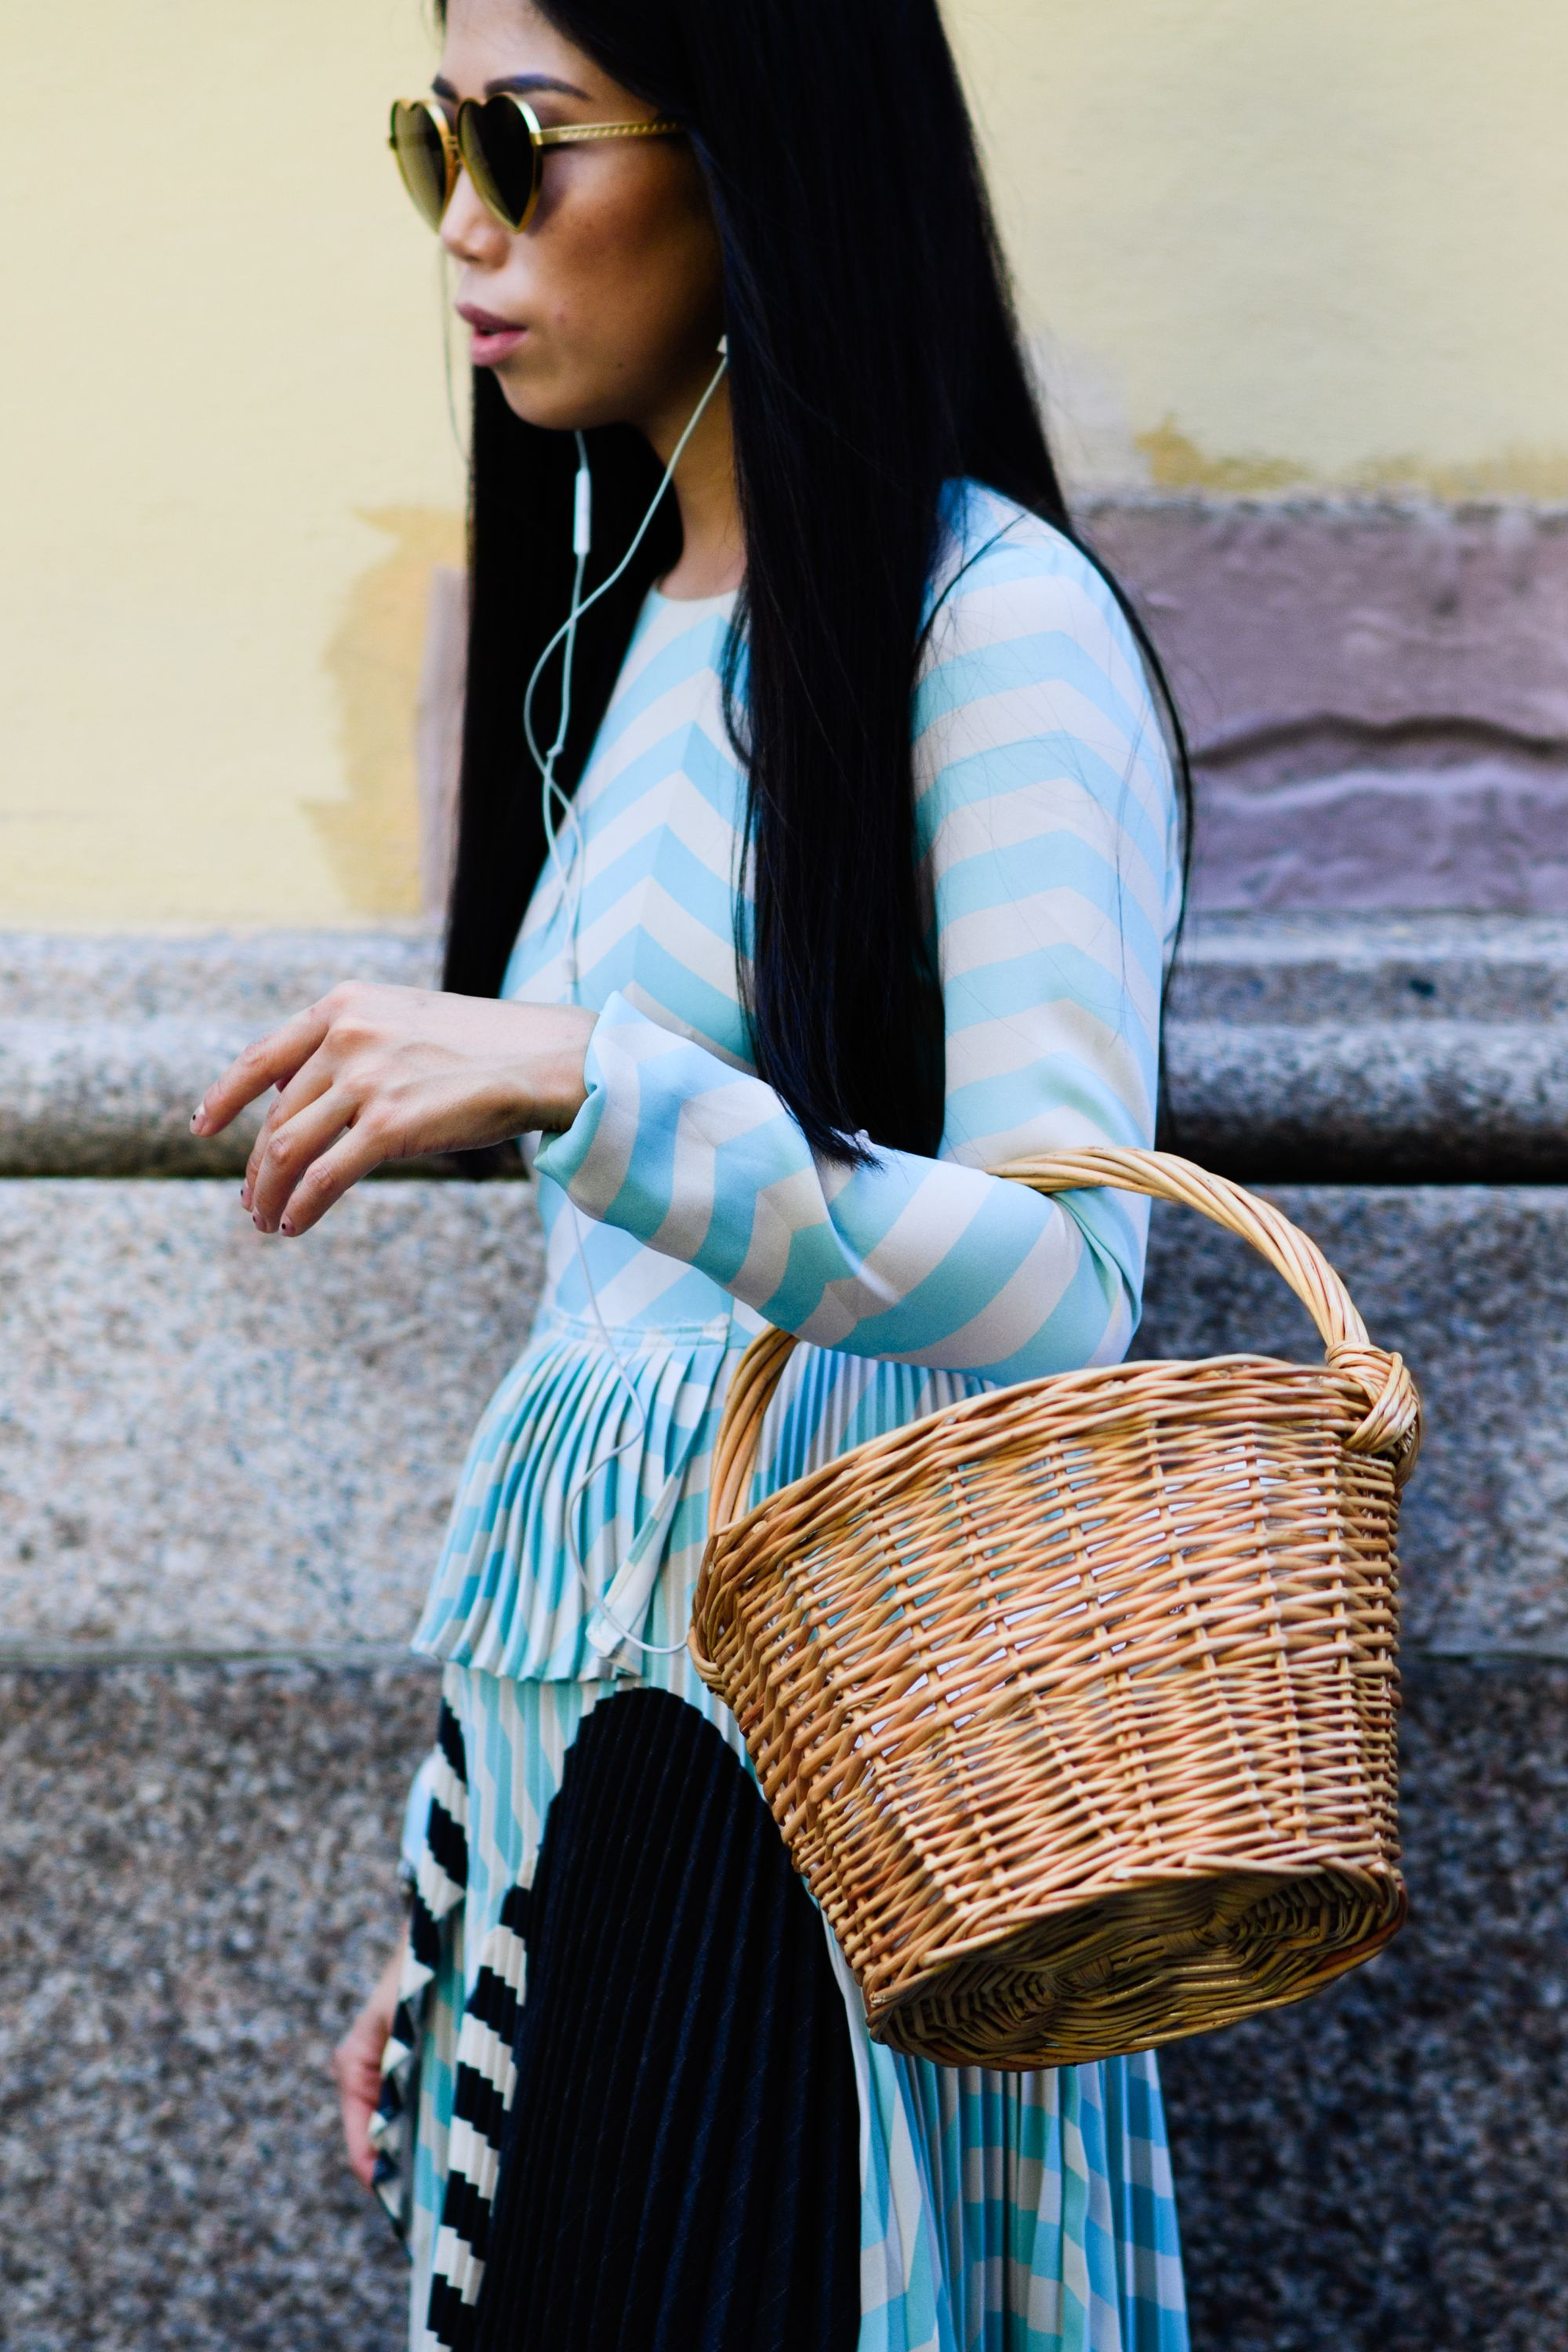 """<p>On the handbag front, Aiken is a fan of the city basket. """"<strong data-redactor-tag=""""strong"""" data-verified=""""redactor"""">It's one of those classic summer essentials, but it has become more structured and refined for the city streets</strong>. <a href=""""https://www.net-a-porter.com/us/en/Shop/Designers/Muun?pn=1&npp=60&image_view=product&dScroll=0"""" data-tracking-id=""""recirc-text-link"""">Muun</a> and <a href=""""https://www.net-a-porter.com/us/en/Shop/Designers/Cult_Gaia?pn=1&npp=60&image_view=product&dScroll=0"""" data-tracking-id=""""recirc-text-link"""">Cult Gaia</a> are two of our favorite brands!""""</p>"""